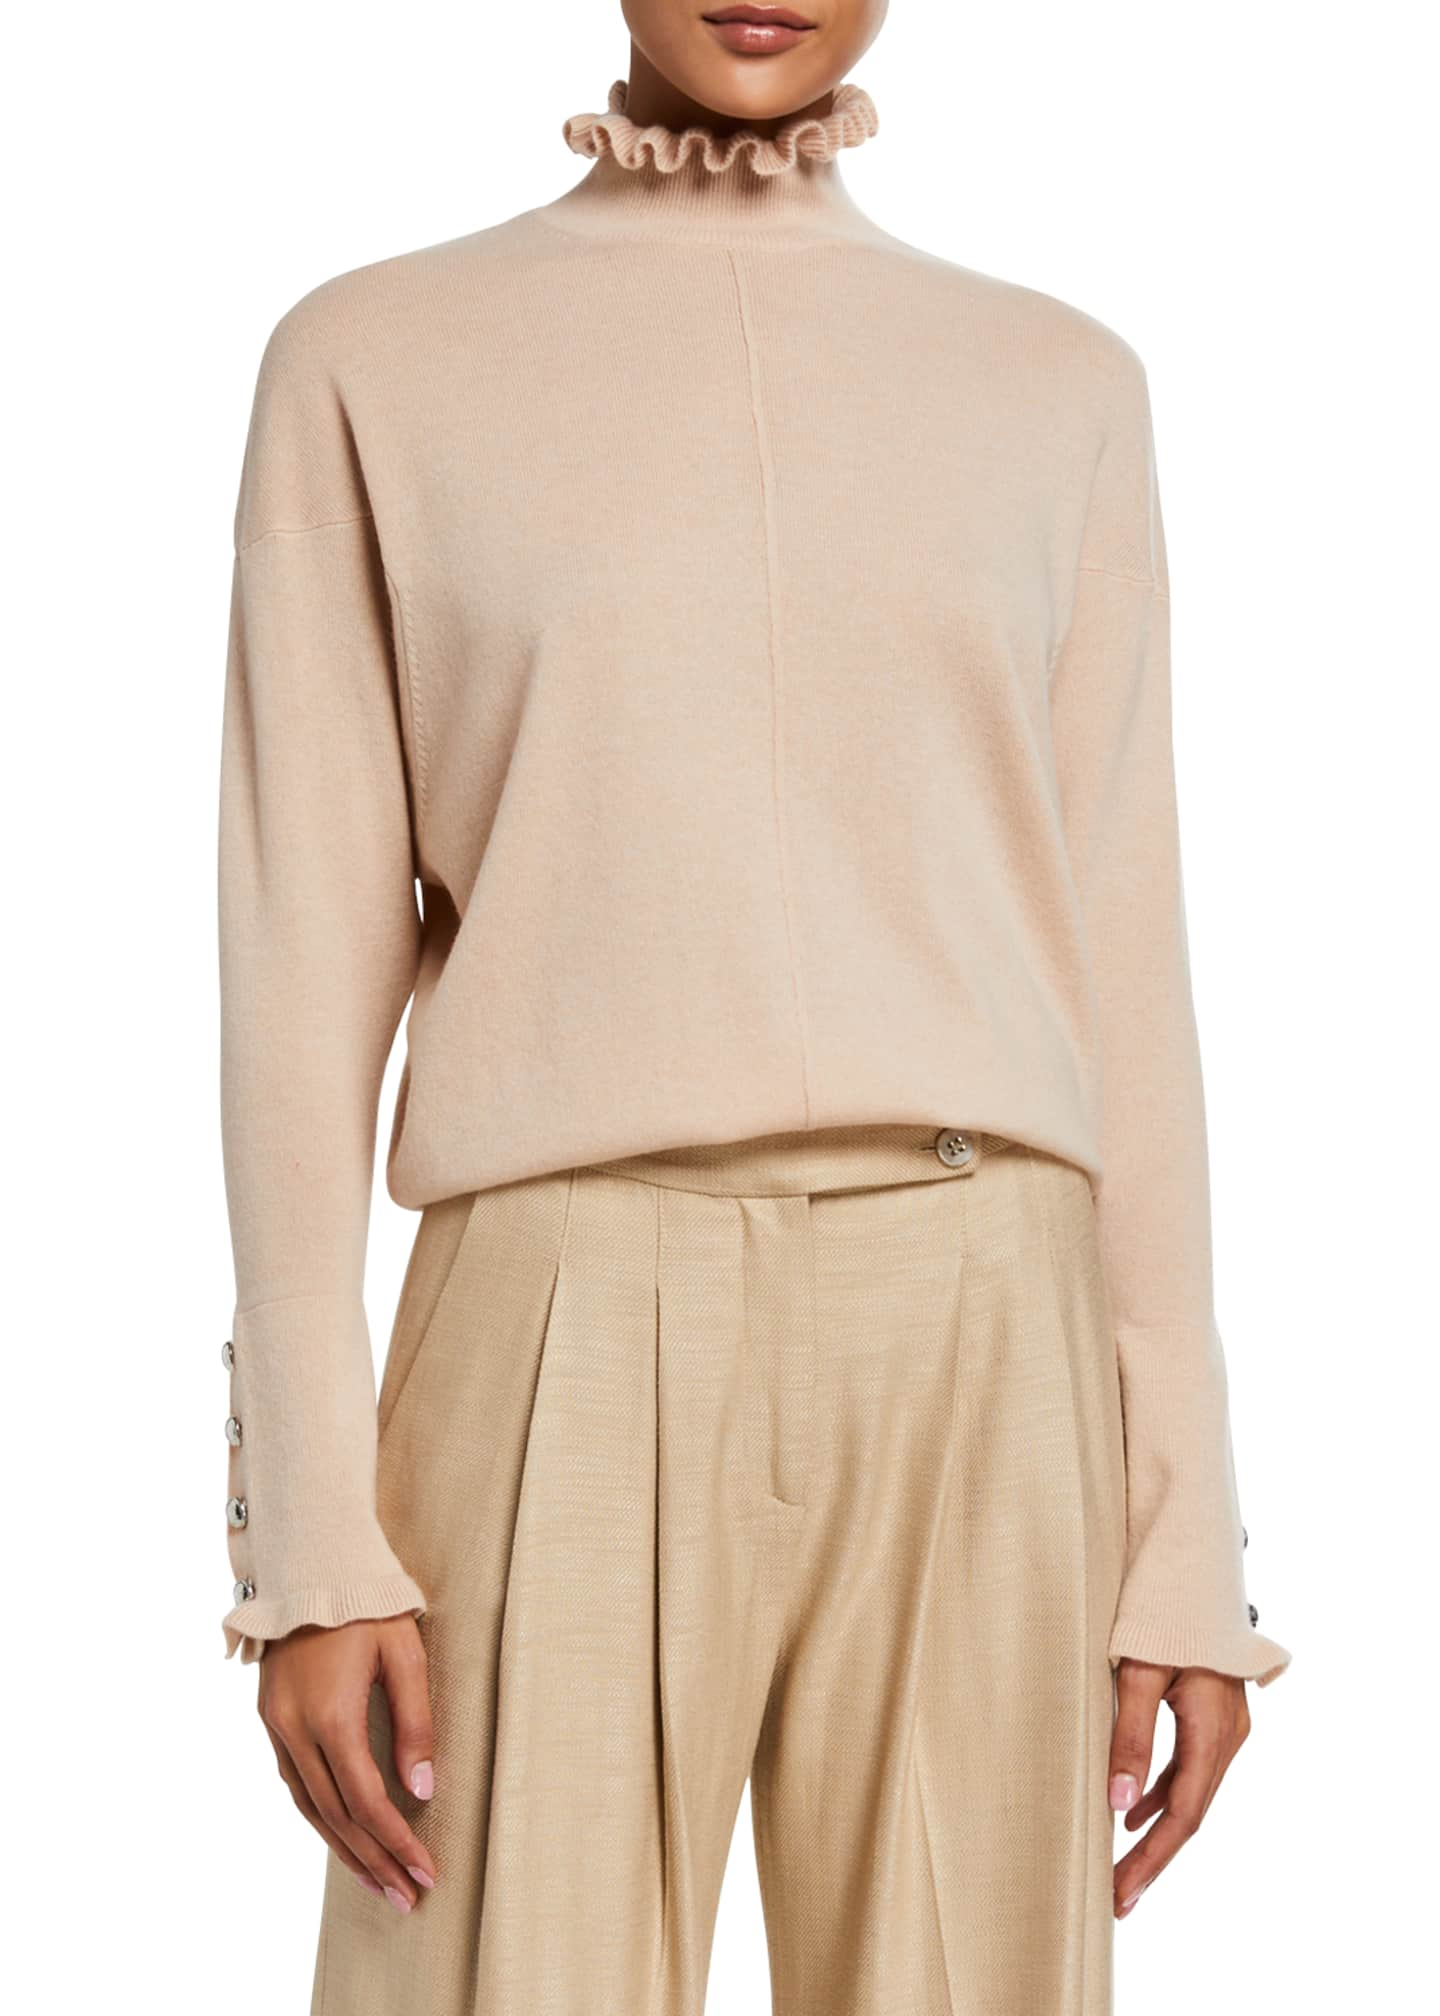 Chloe Cashmere Frill High-Neck Sweater